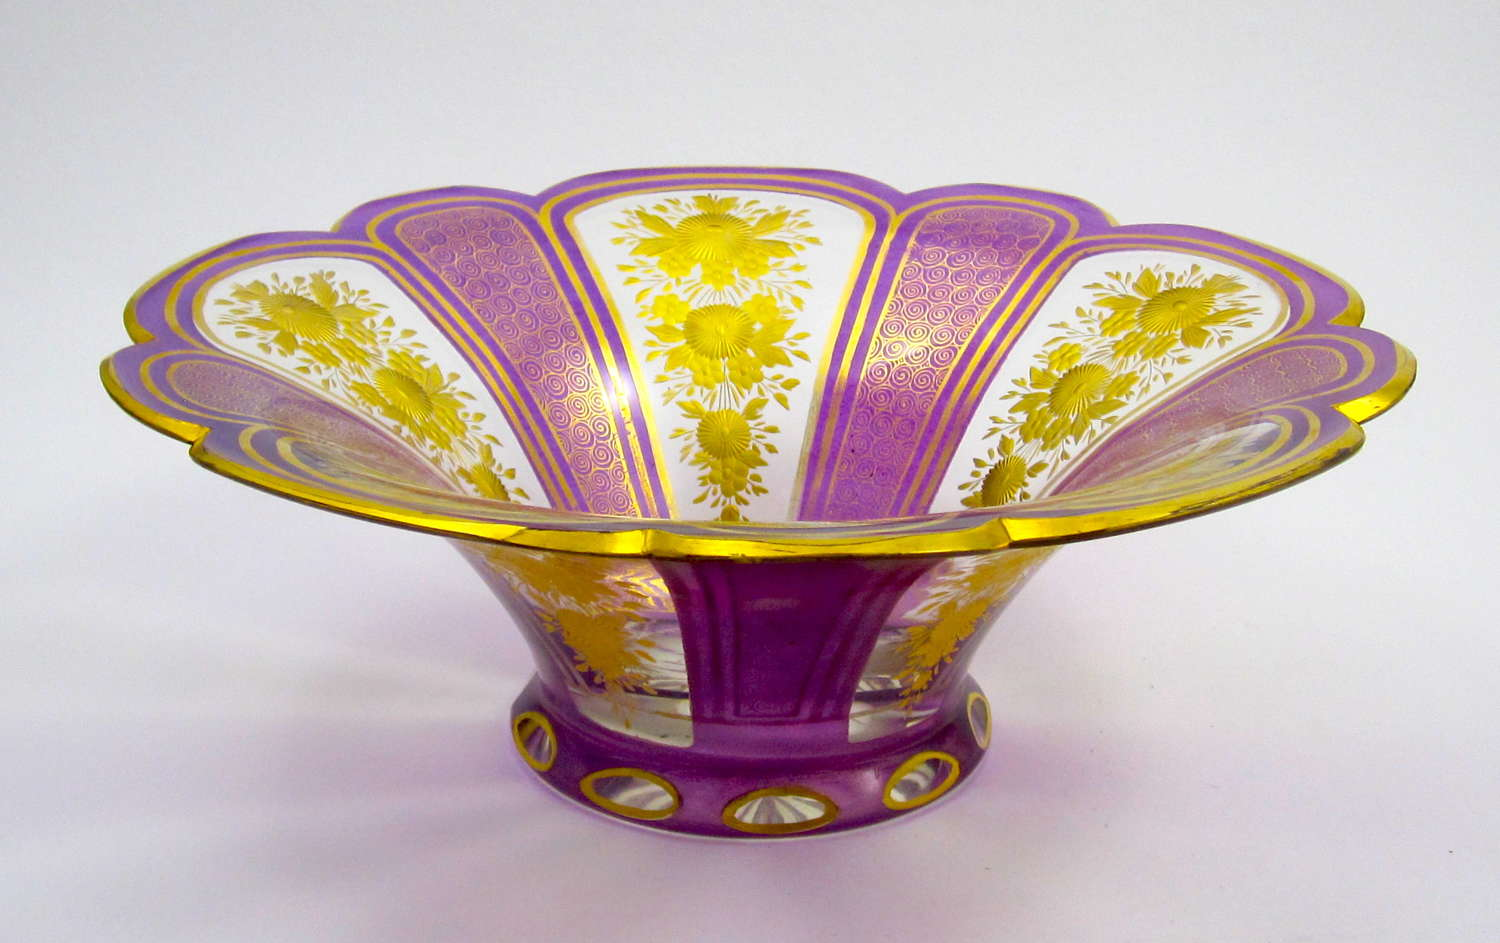 Stunning Antique Bohemian MOSER Lilac and Gold Enamelled Glass Bowl